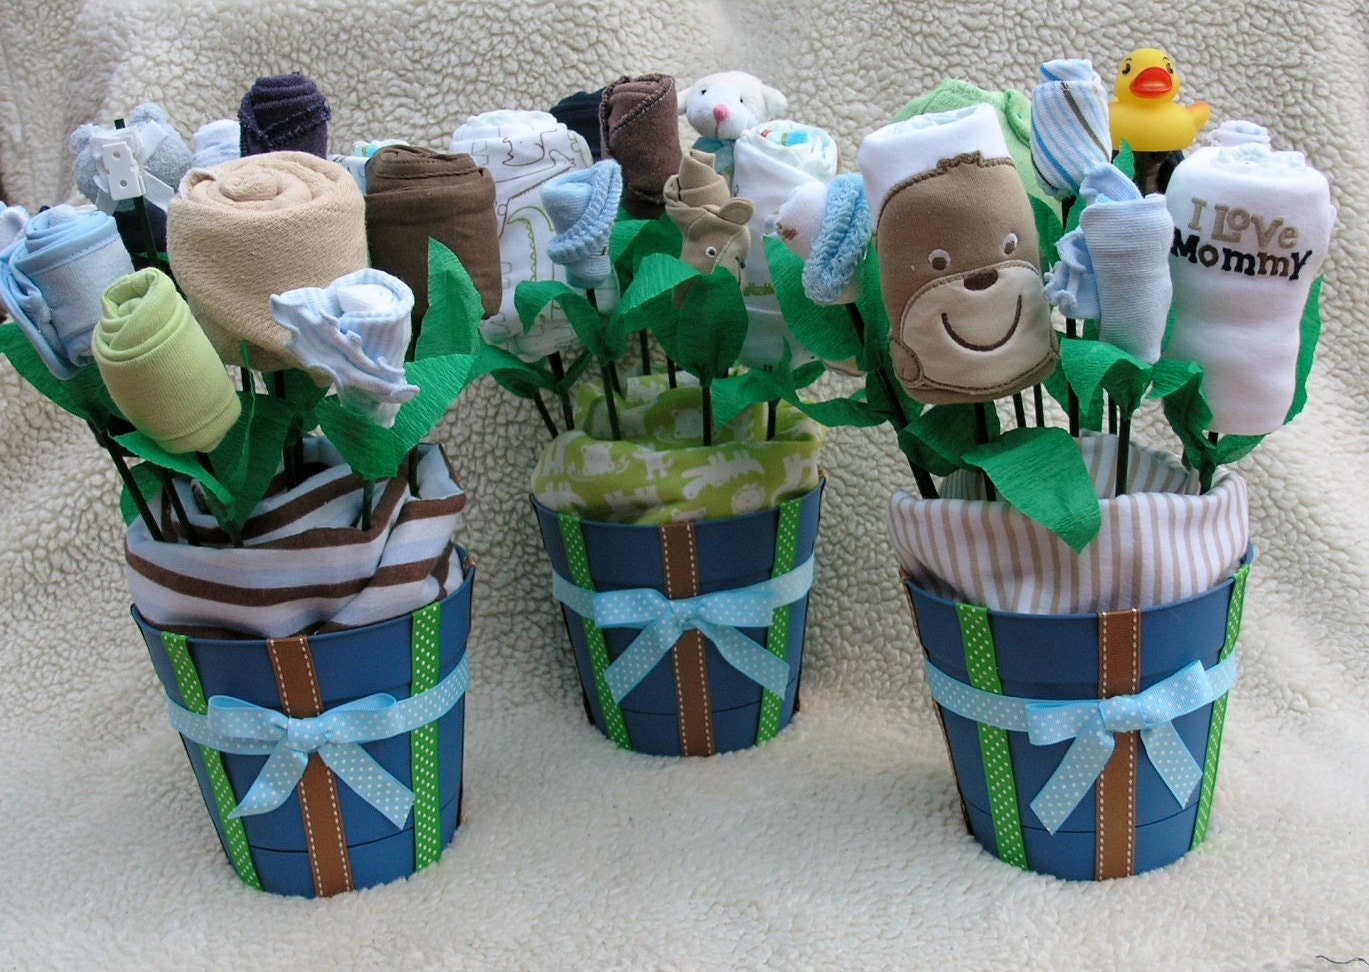 Duck baby shower on pinterest rubber duck baby boy for Baby shower decoration ideas homemade